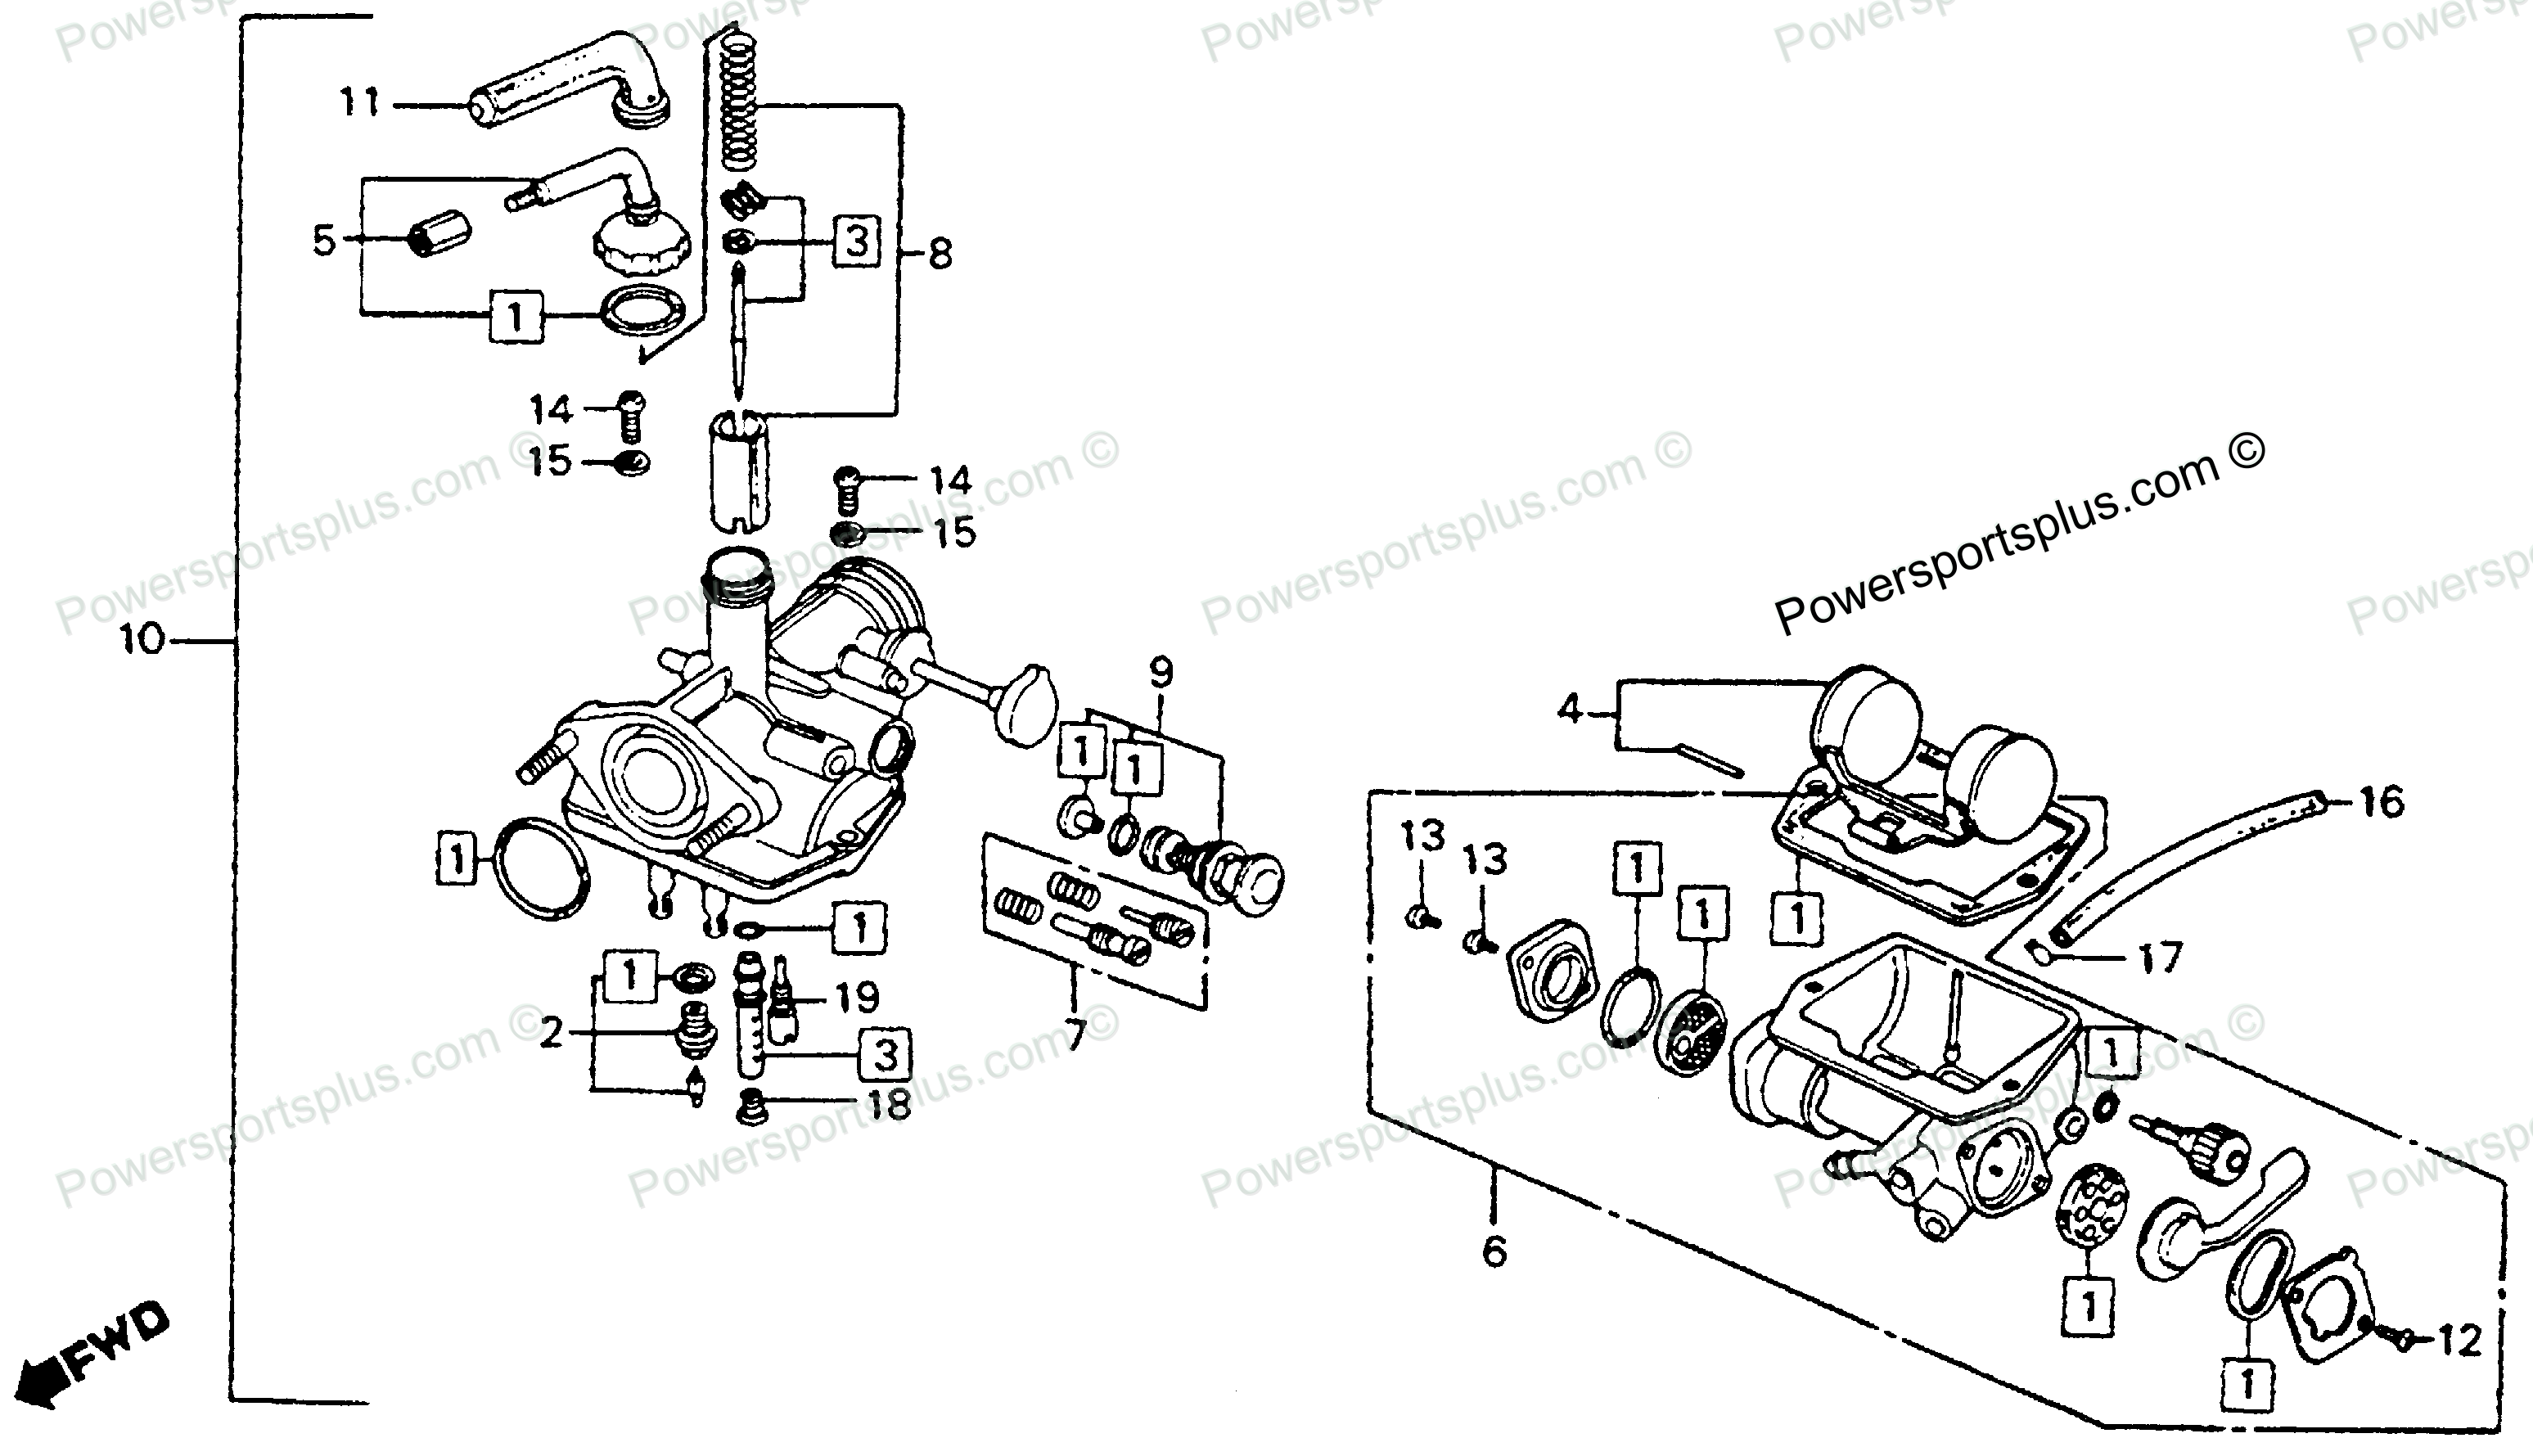 0efb18283ae24d7a2627632be070cf5c diagram of honda motorcycle parts 1976 ct90 a carburetor k6 77 honda motorcycles parts diagram at n-0.co